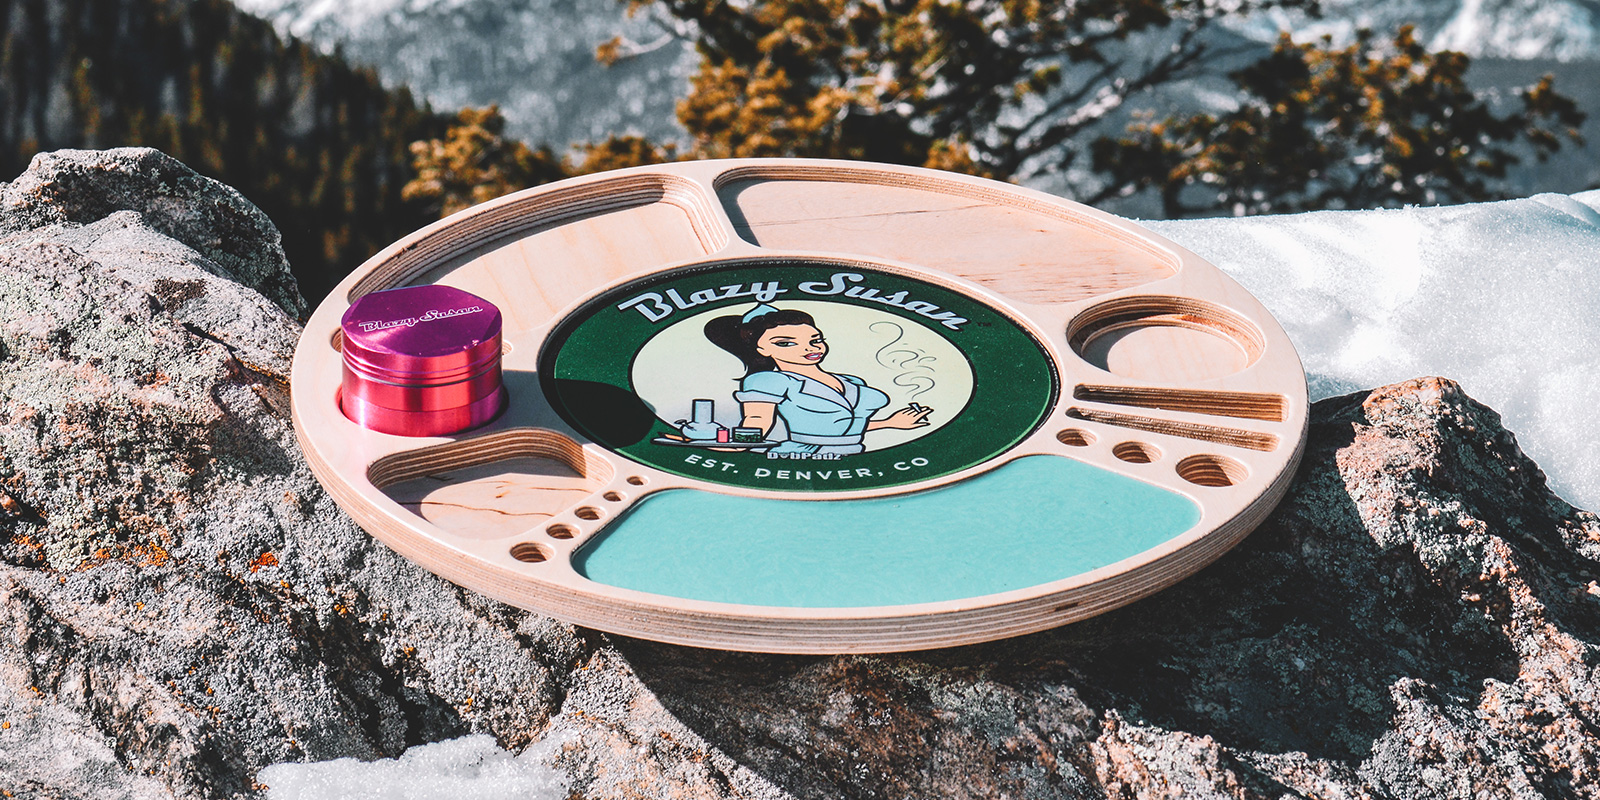 Blazy Susan Spinning Rolling Tray